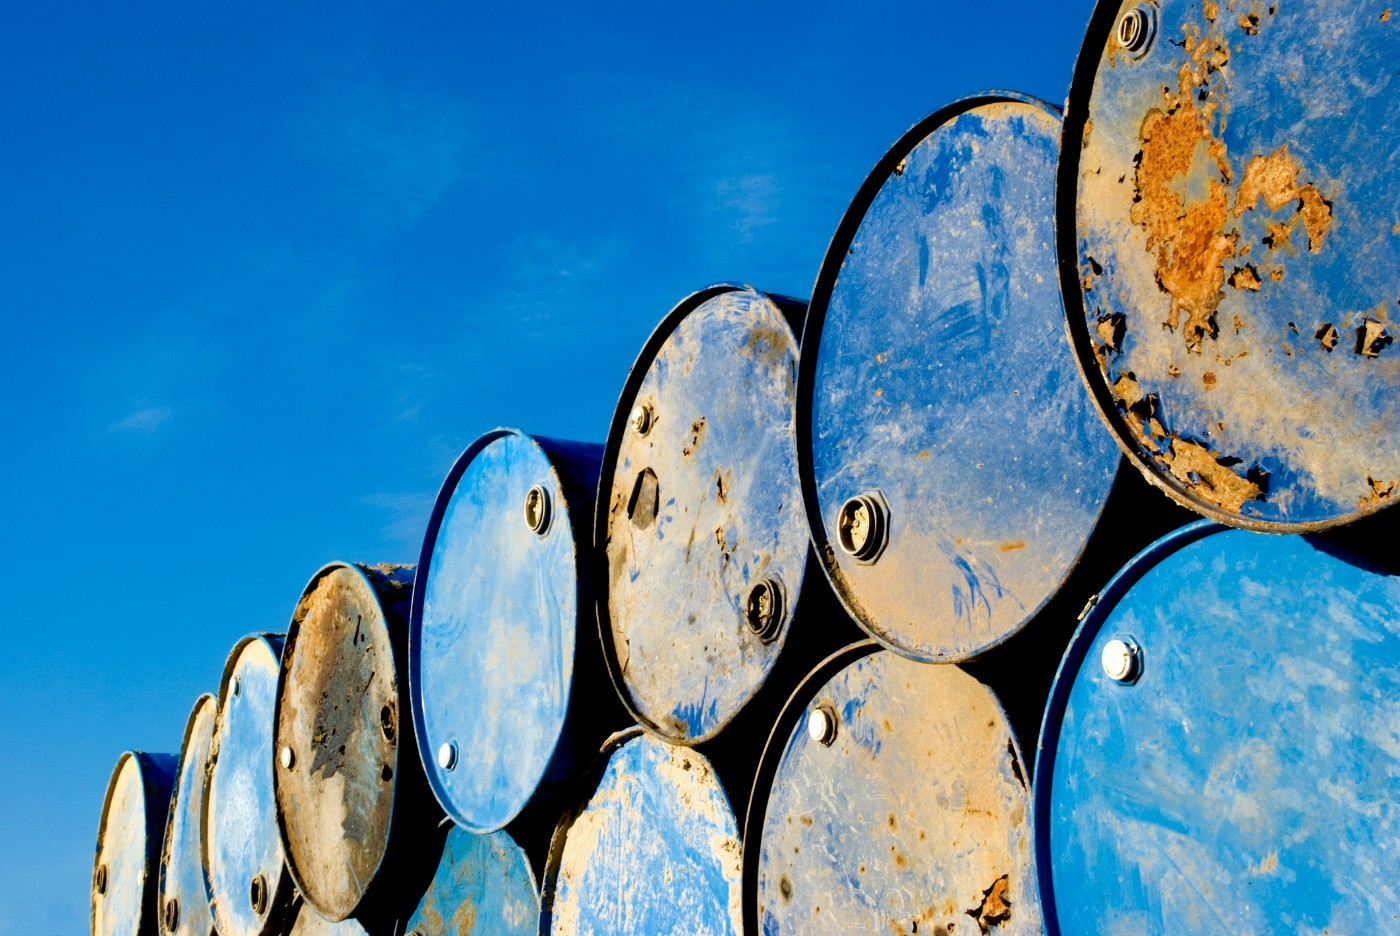 https://tickertapecdn.tdameritrade.com/assets/images/pages/md/Oil barrels stacked against a bright blue sky: Crude oil may reach $100/barrel